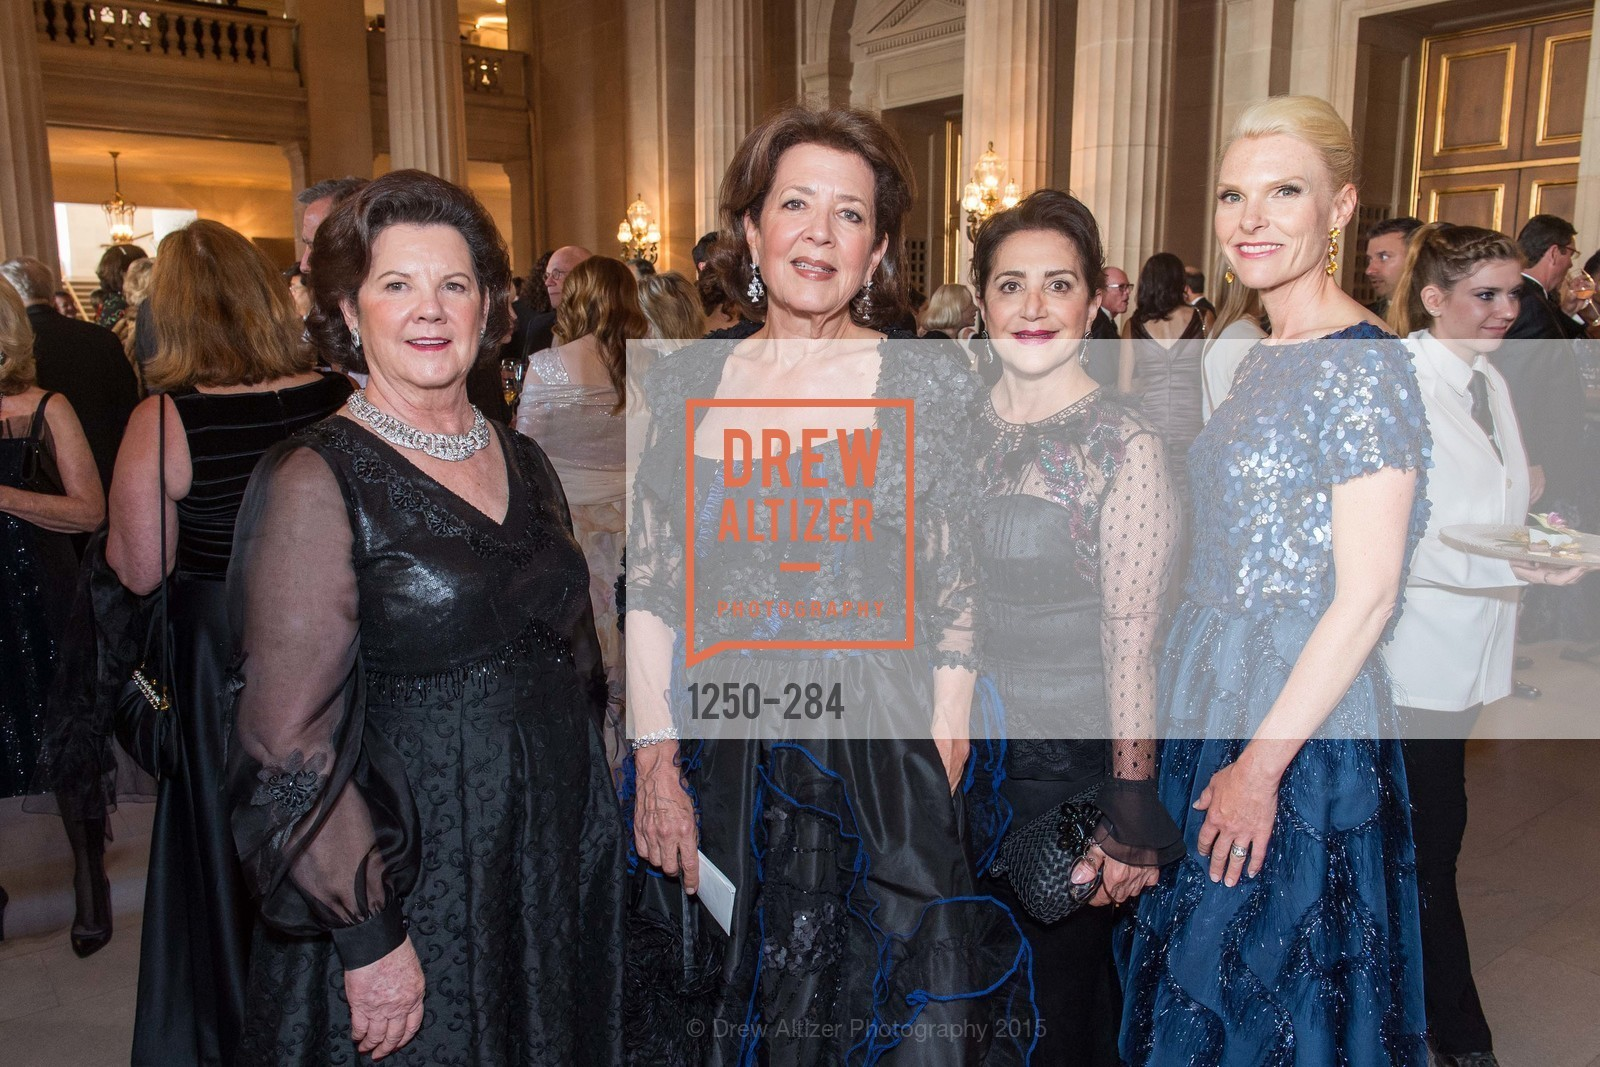 Barbara Fritz, Linda Kemper, Lily Samii, Linle Froeb, Opera Ball 2015: Moonlight & Music, War Memorial Opera House. 301 Van Ness Ave, September 11th, 2015,Drew Altizer, Drew Altizer Photography, full-service agency, private events, San Francisco photographer, photographer california